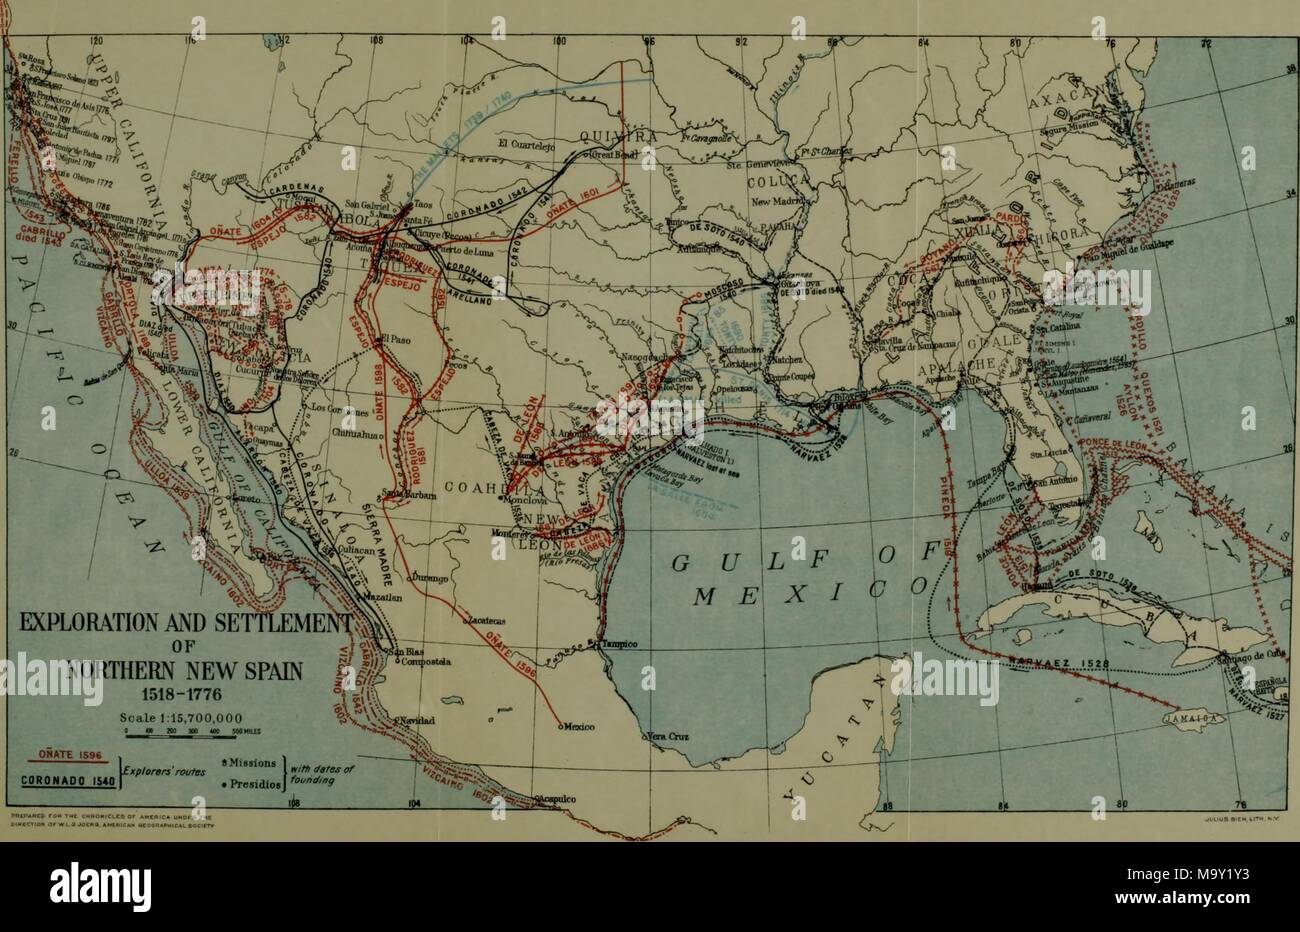 Color illustration depicting a map of the